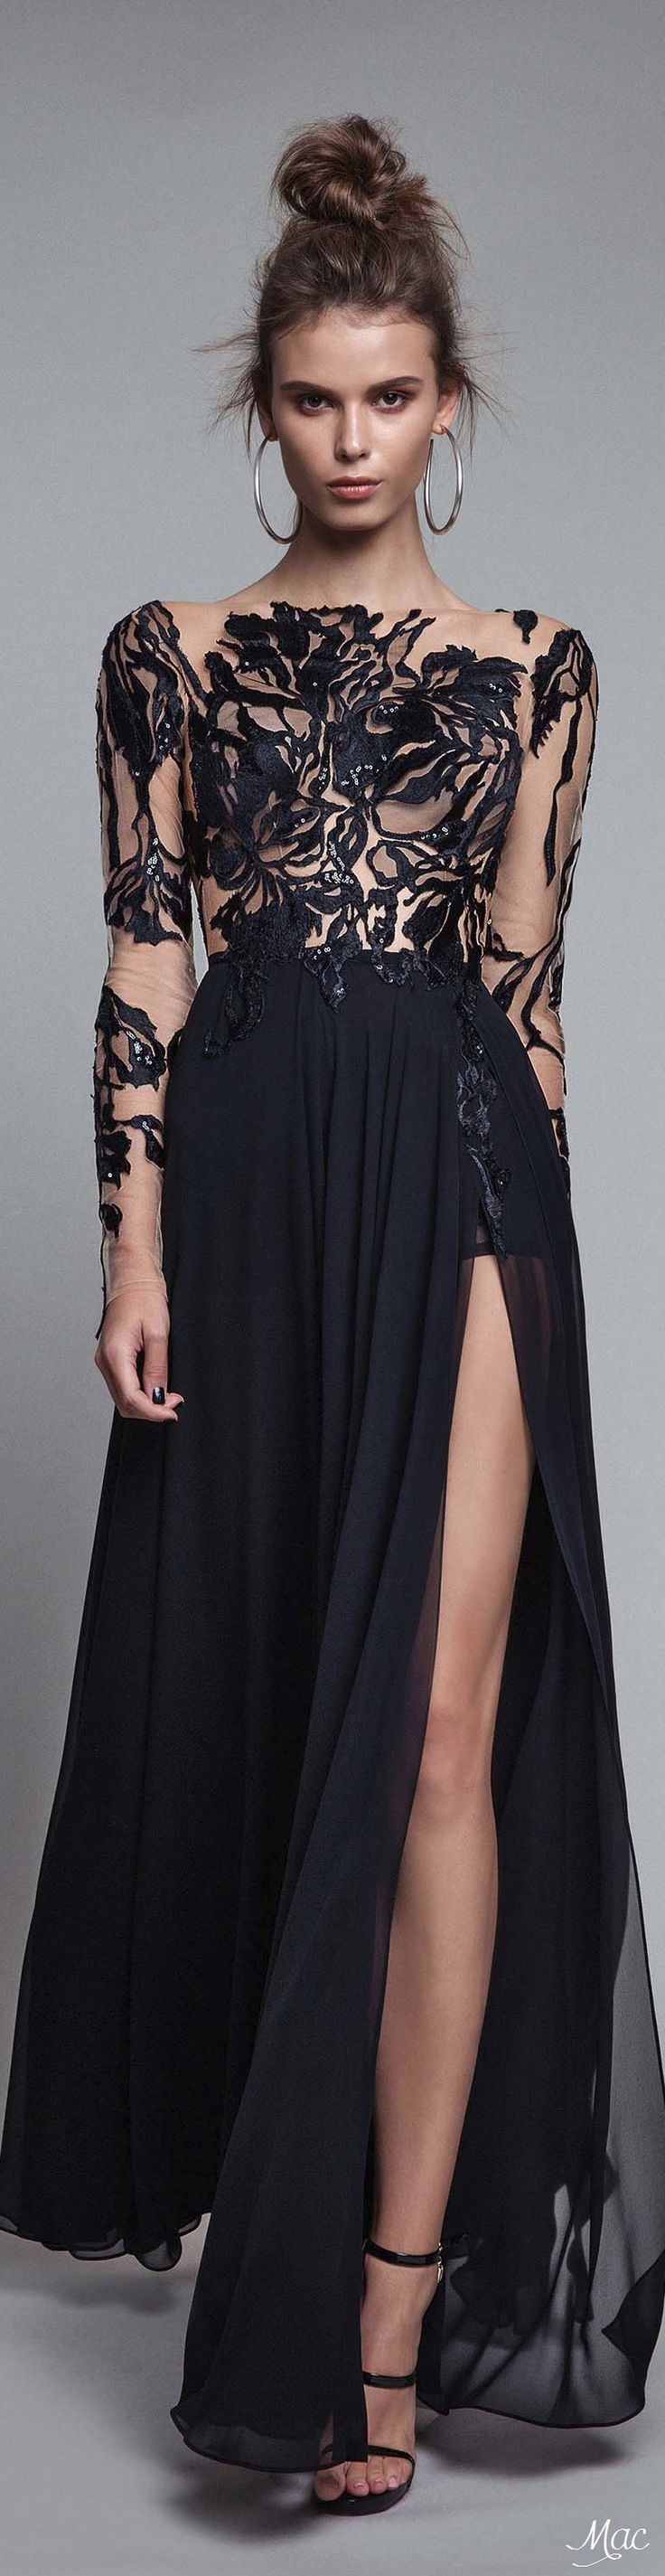 3056 Best Gown Images On Pinterest High Fashion Classy Dress And